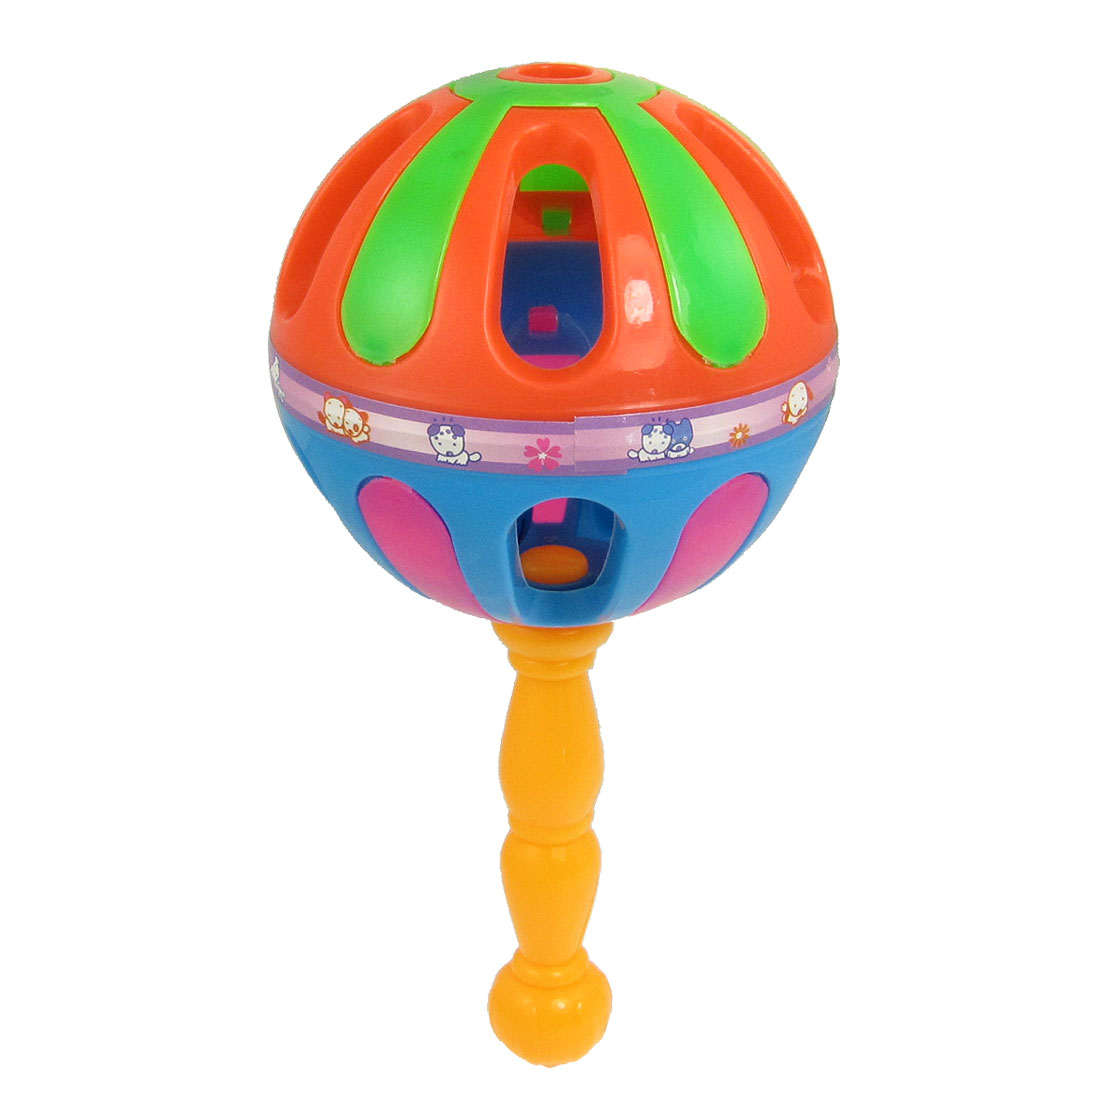 Plastic Cage Ball Jingle Bell Handbell Baby Toy Rattle Shaker Orange